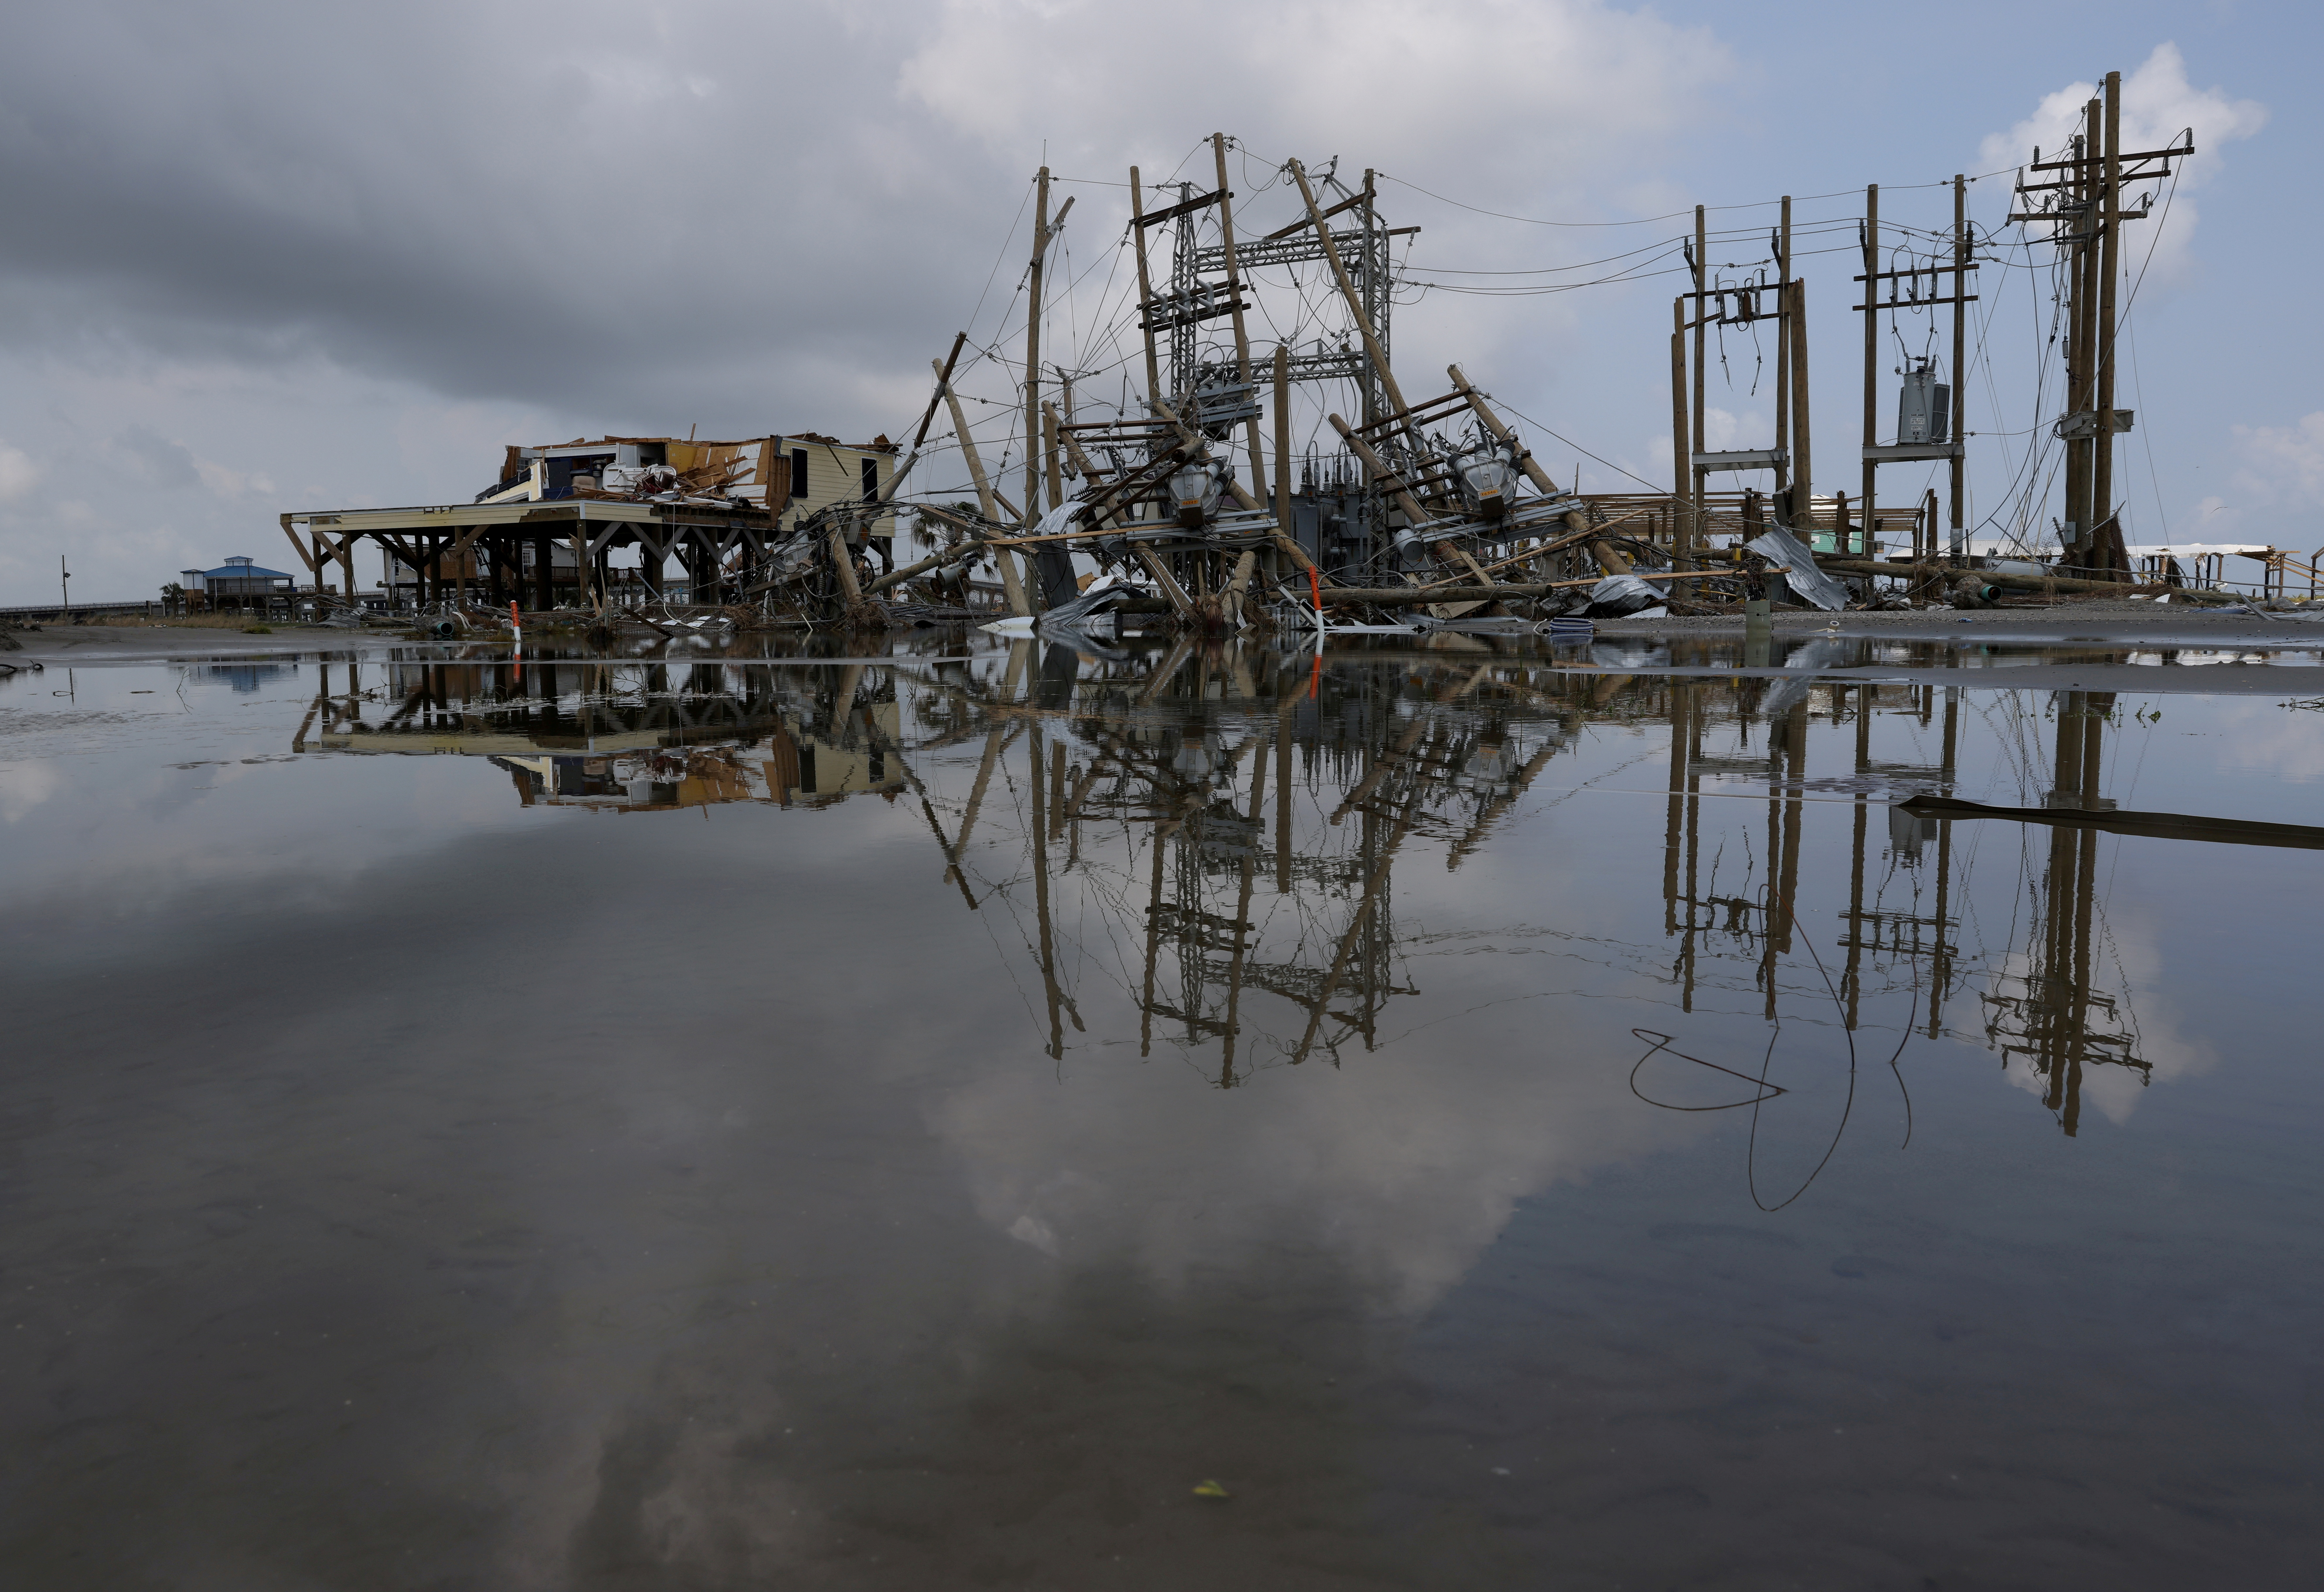 Damaged power lines and homes can be seen days after hurricane Ida ripped through Grand Isle, Louisiana, U.S., September 2, 2021. REUTERS/Leah Millis/File Photo